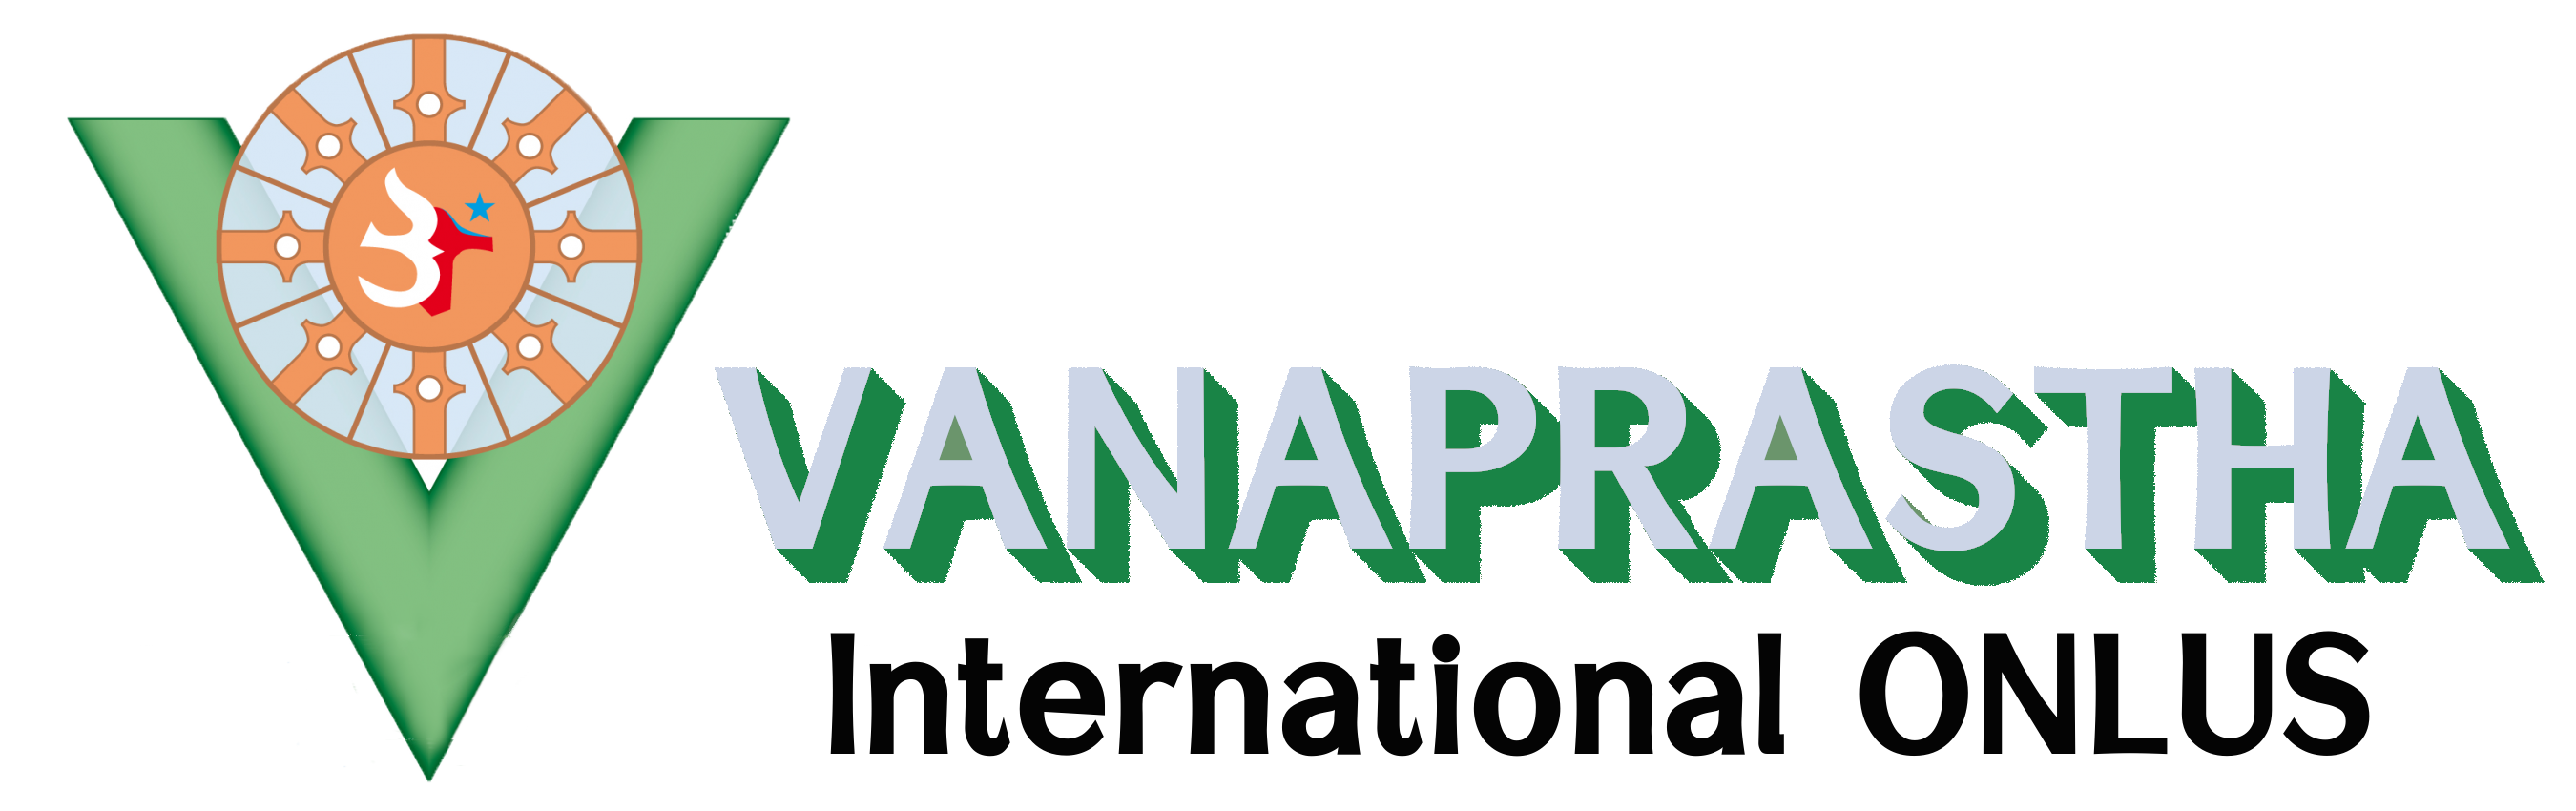 Vanaprastha International Onlus